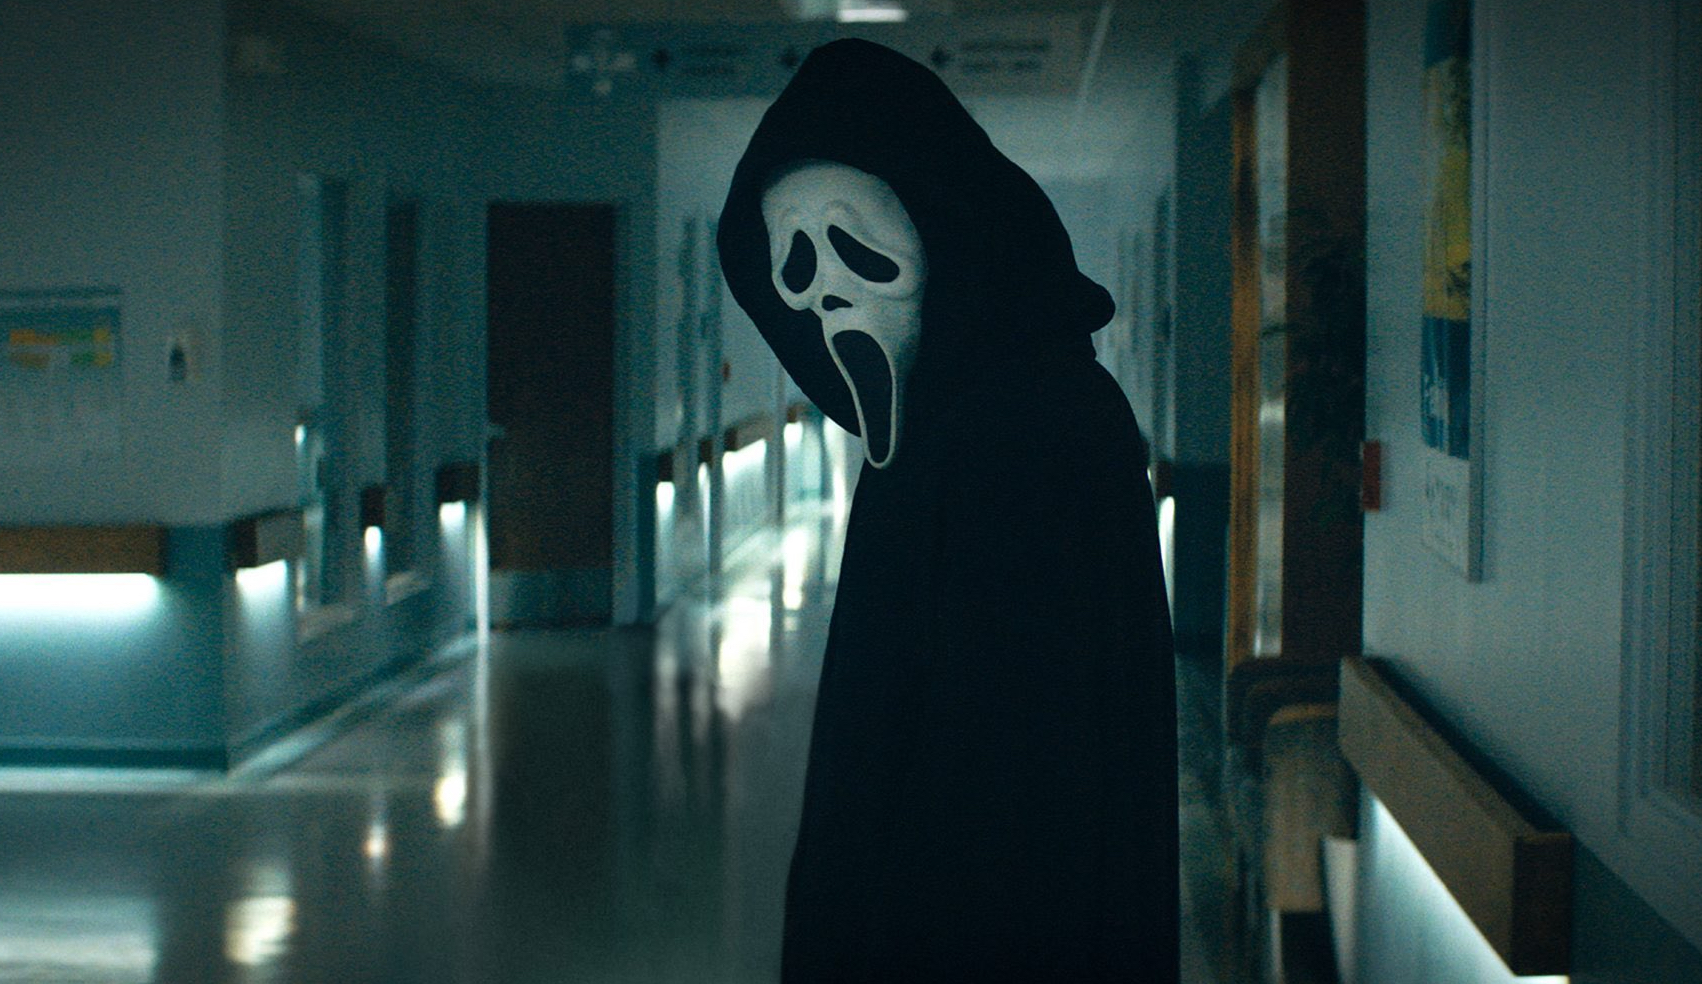 Paramount Pictures have released the official trailer for the upcoming slasher film Scream.